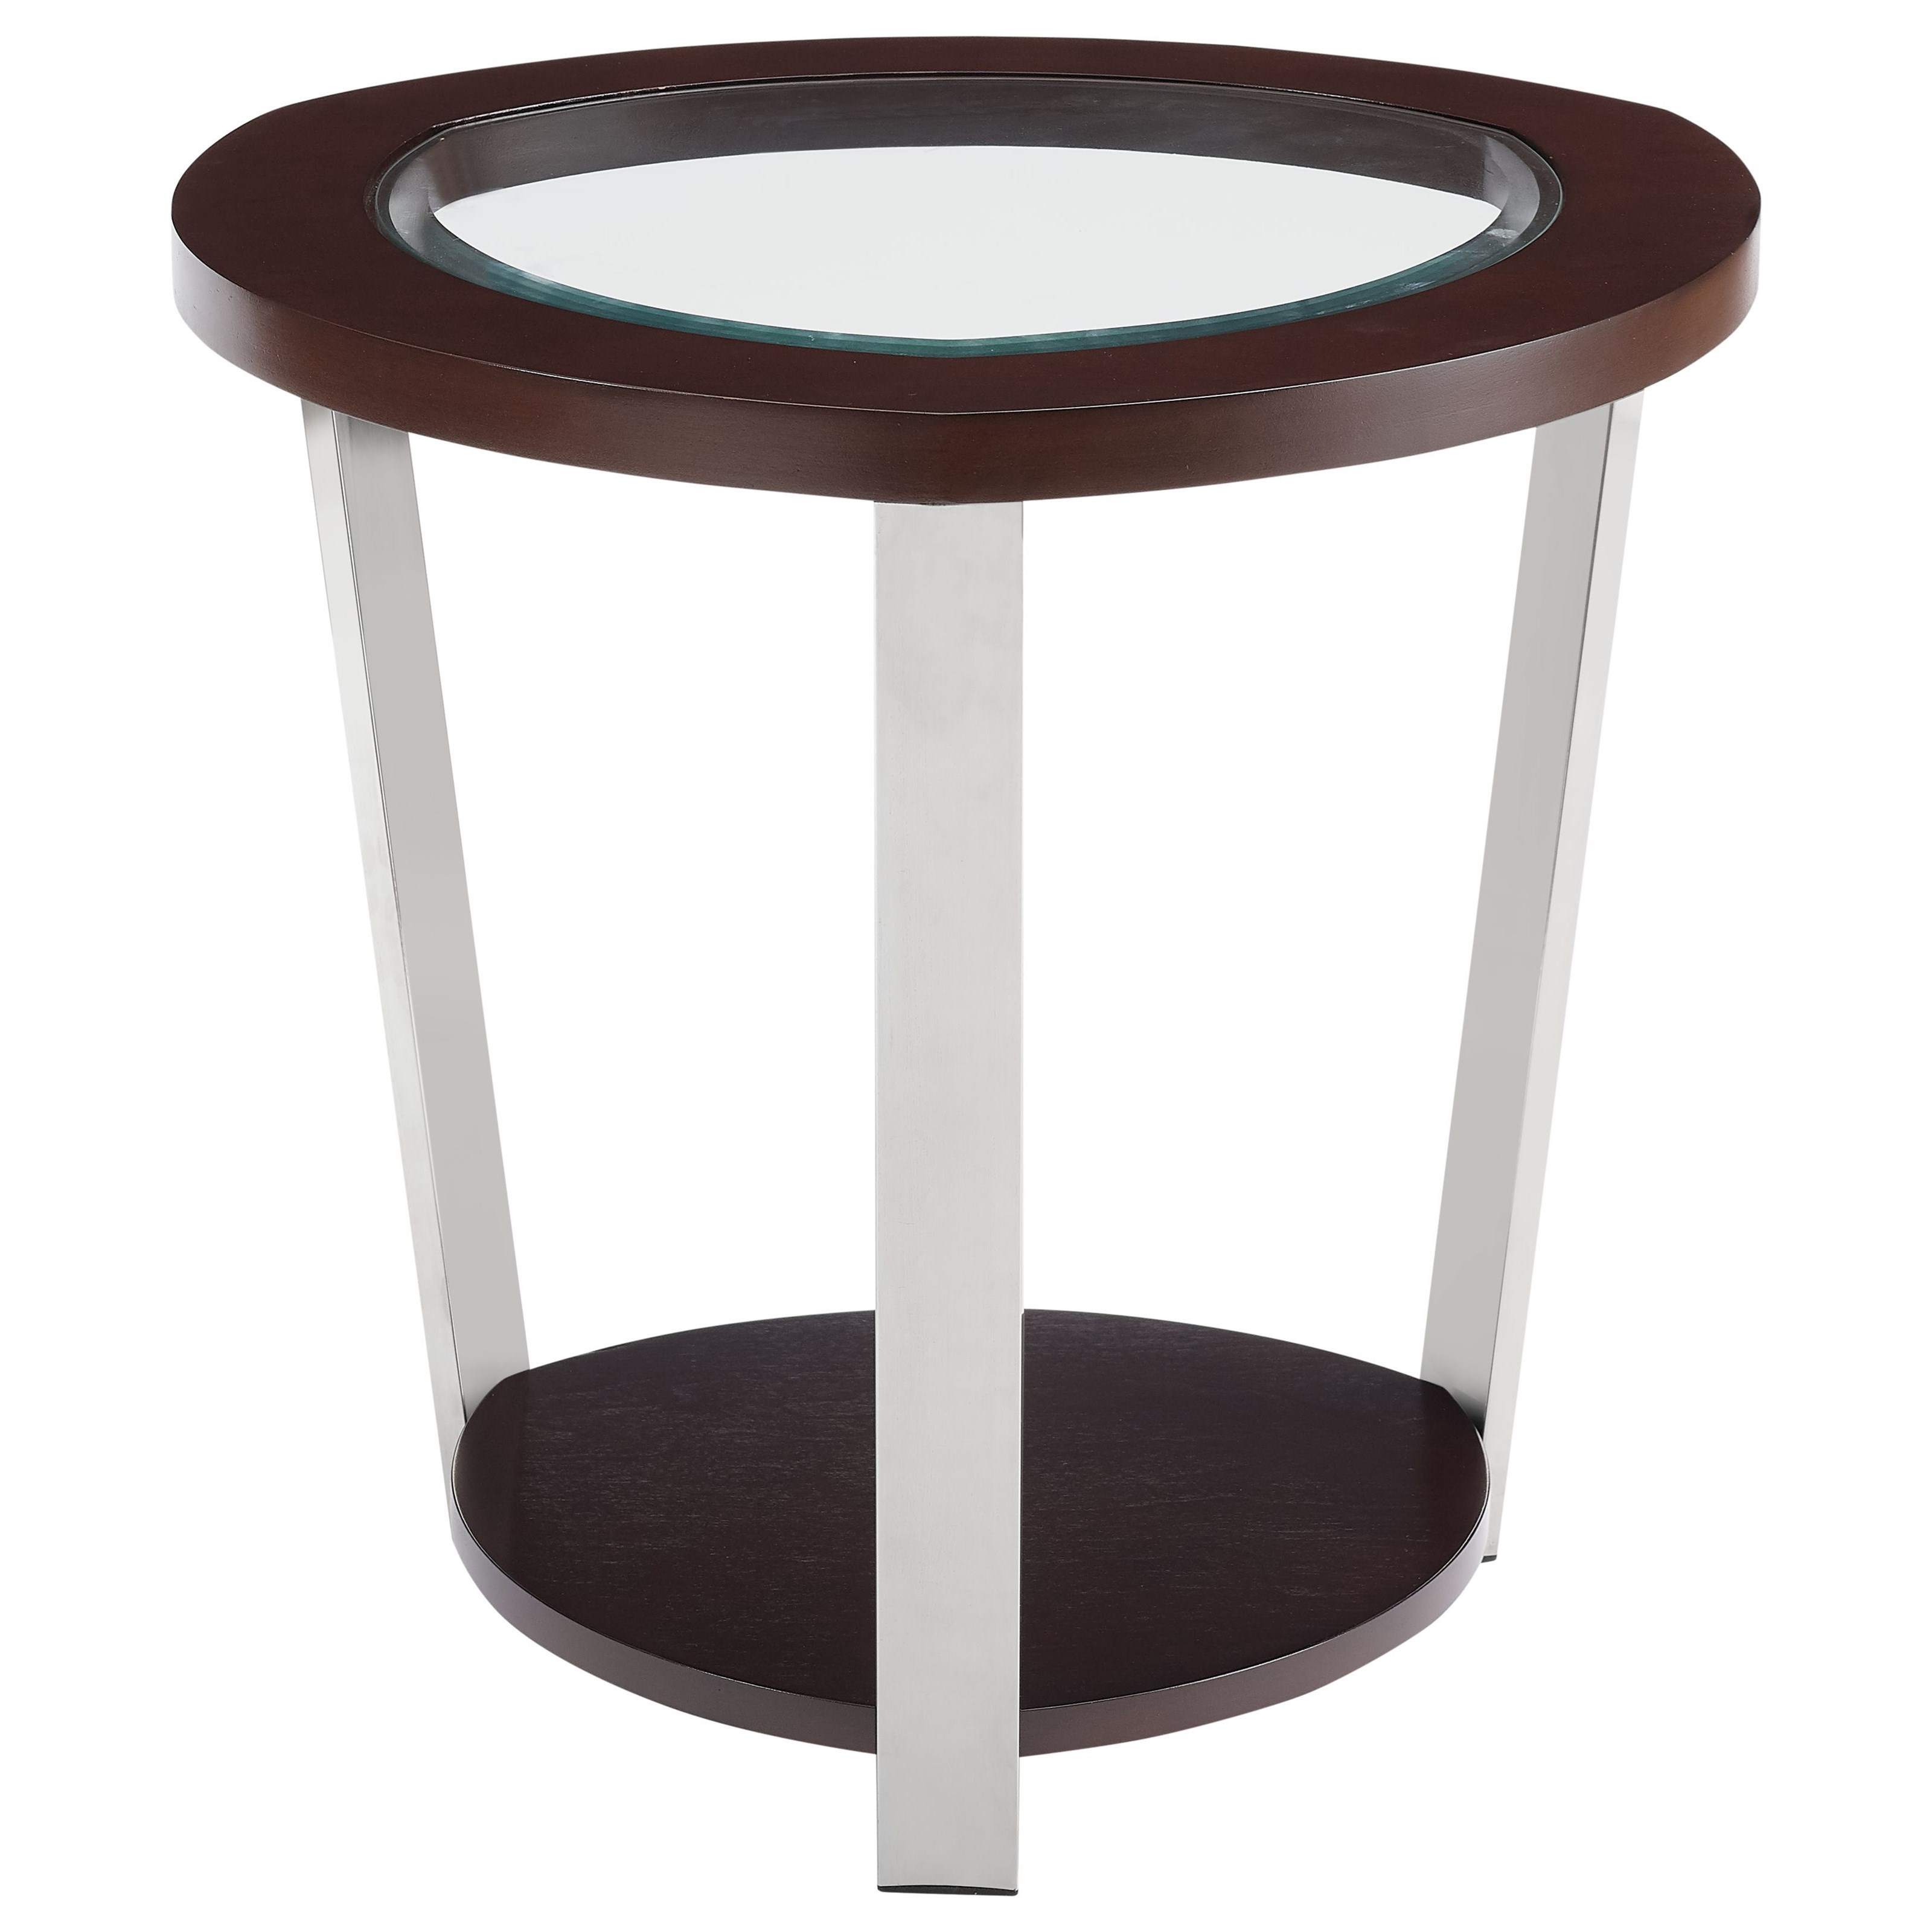 Duncan End Table by Steve Silver at Northeast Factory Direct